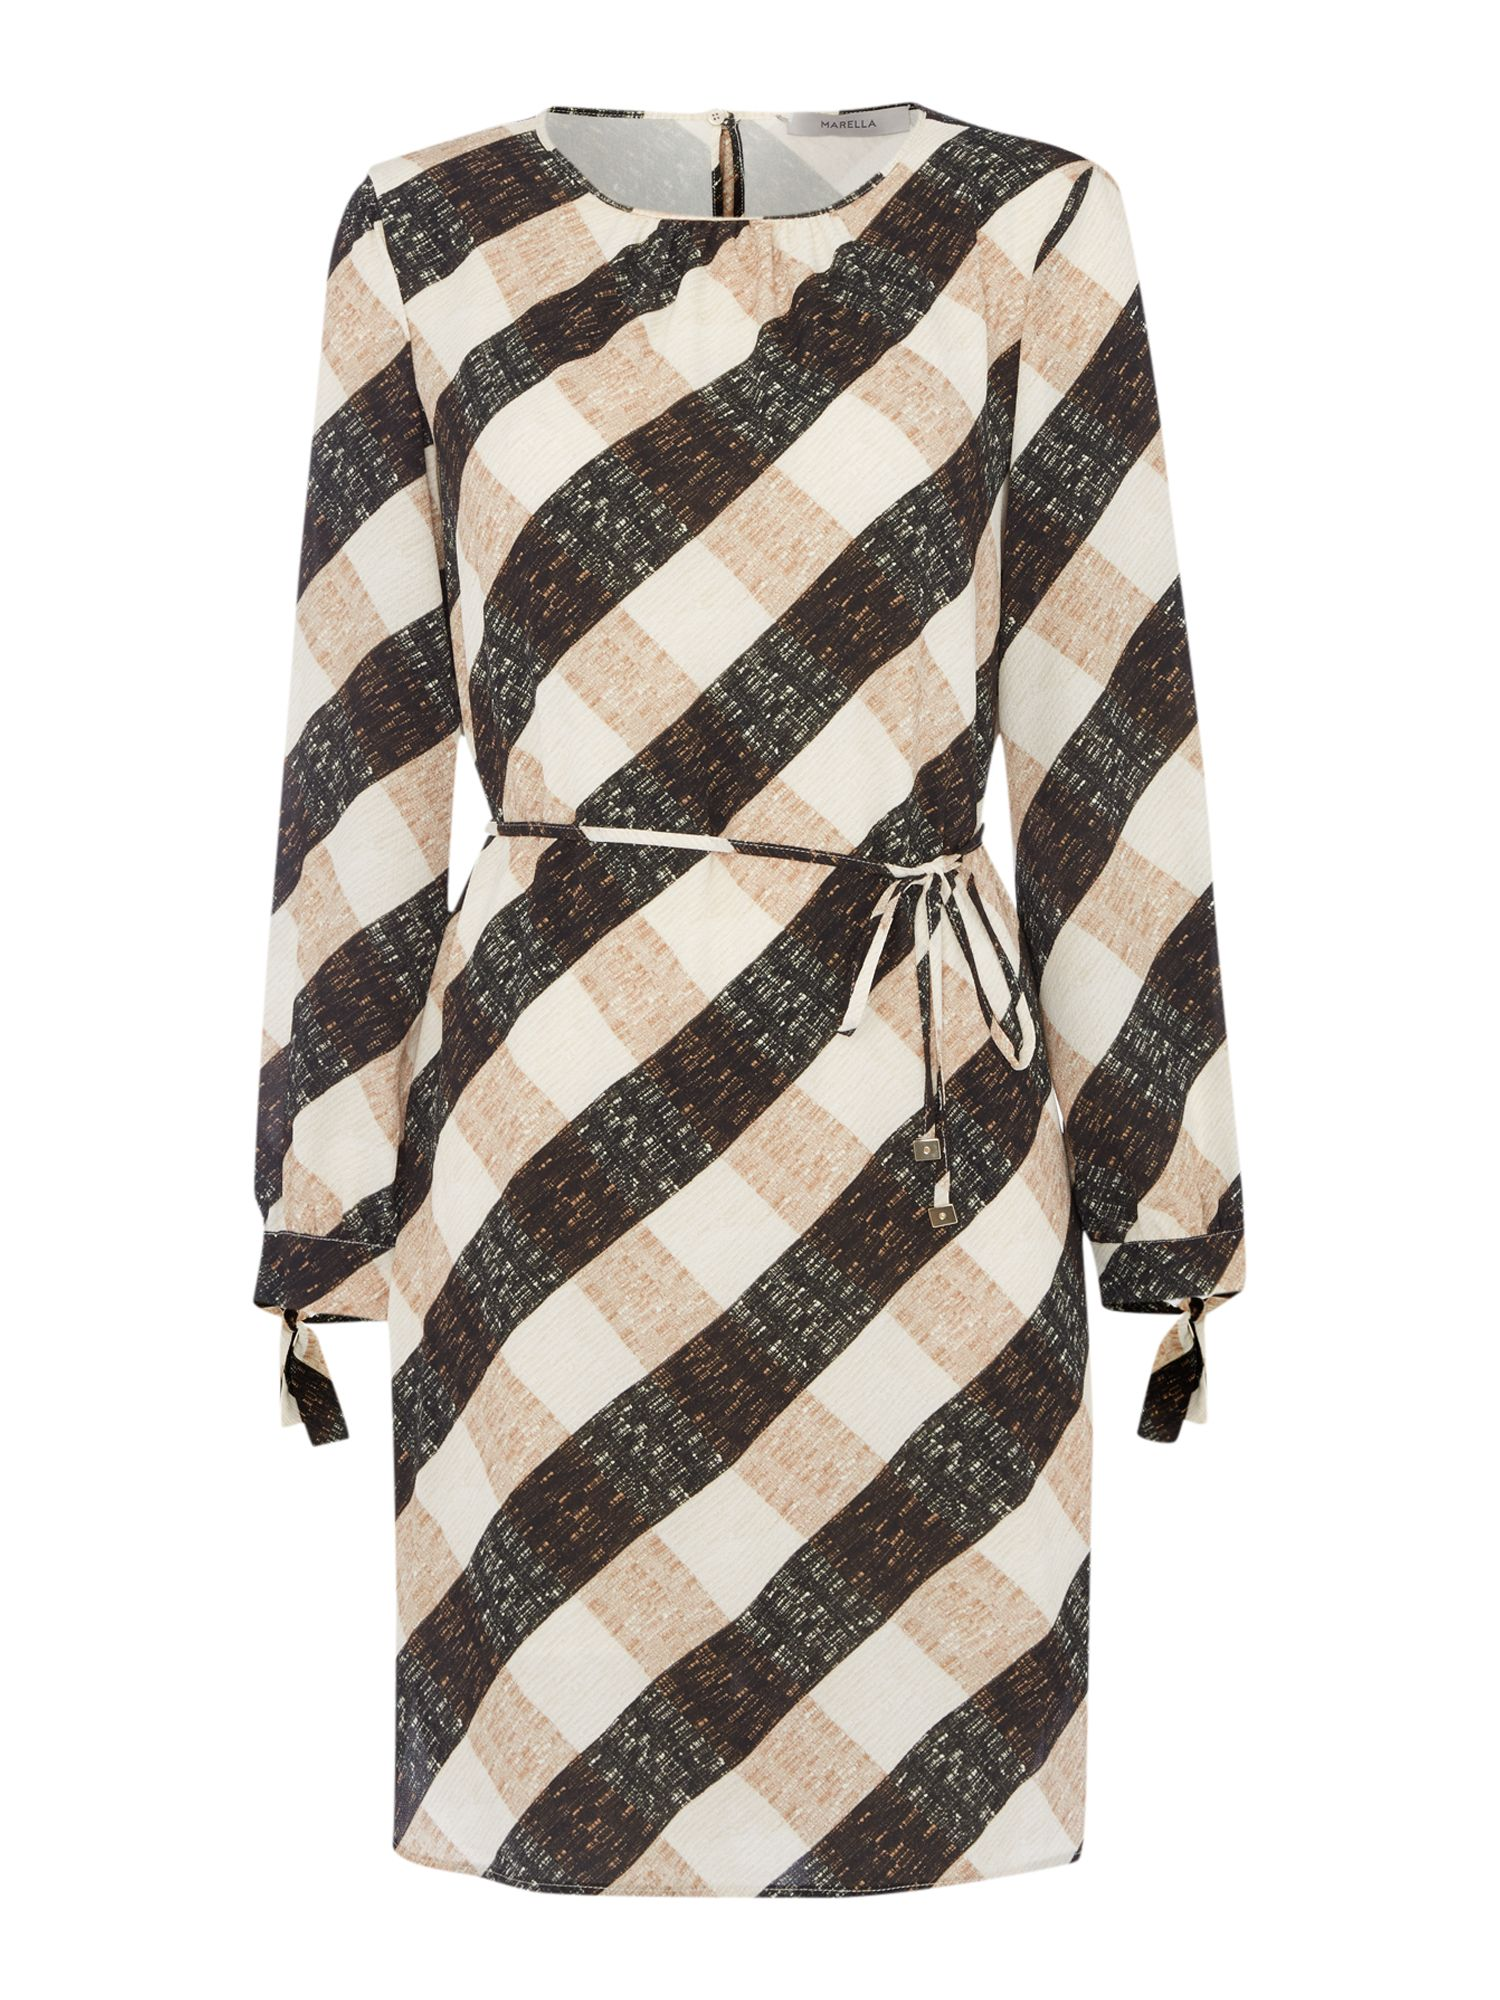 Marella TERZO large gingham print shift dress, Cream